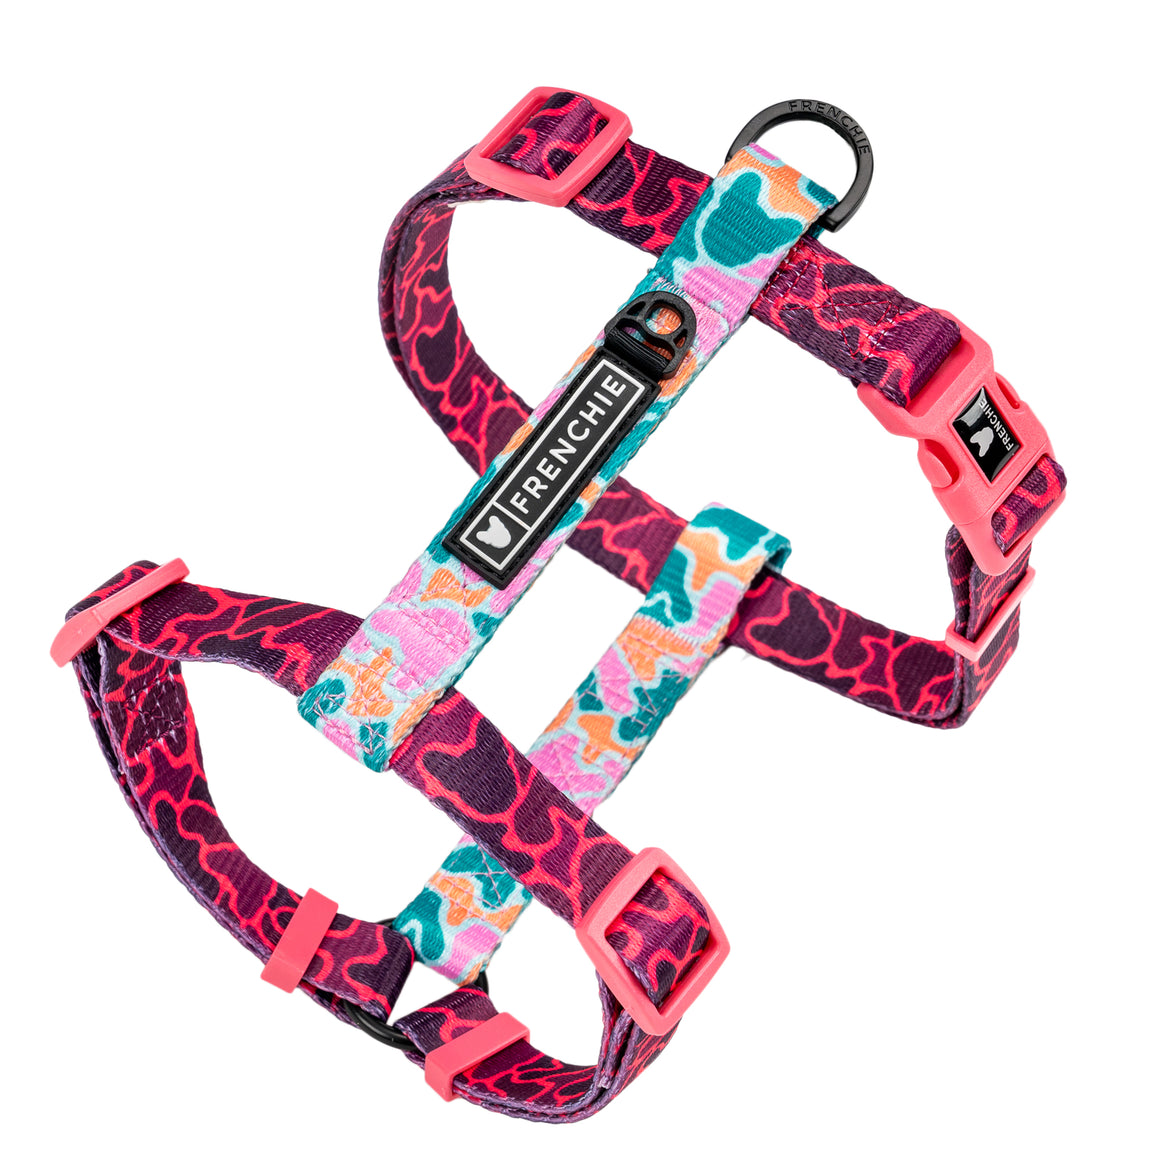 Frenchie Strap Harness - Pink Frenchie Camo